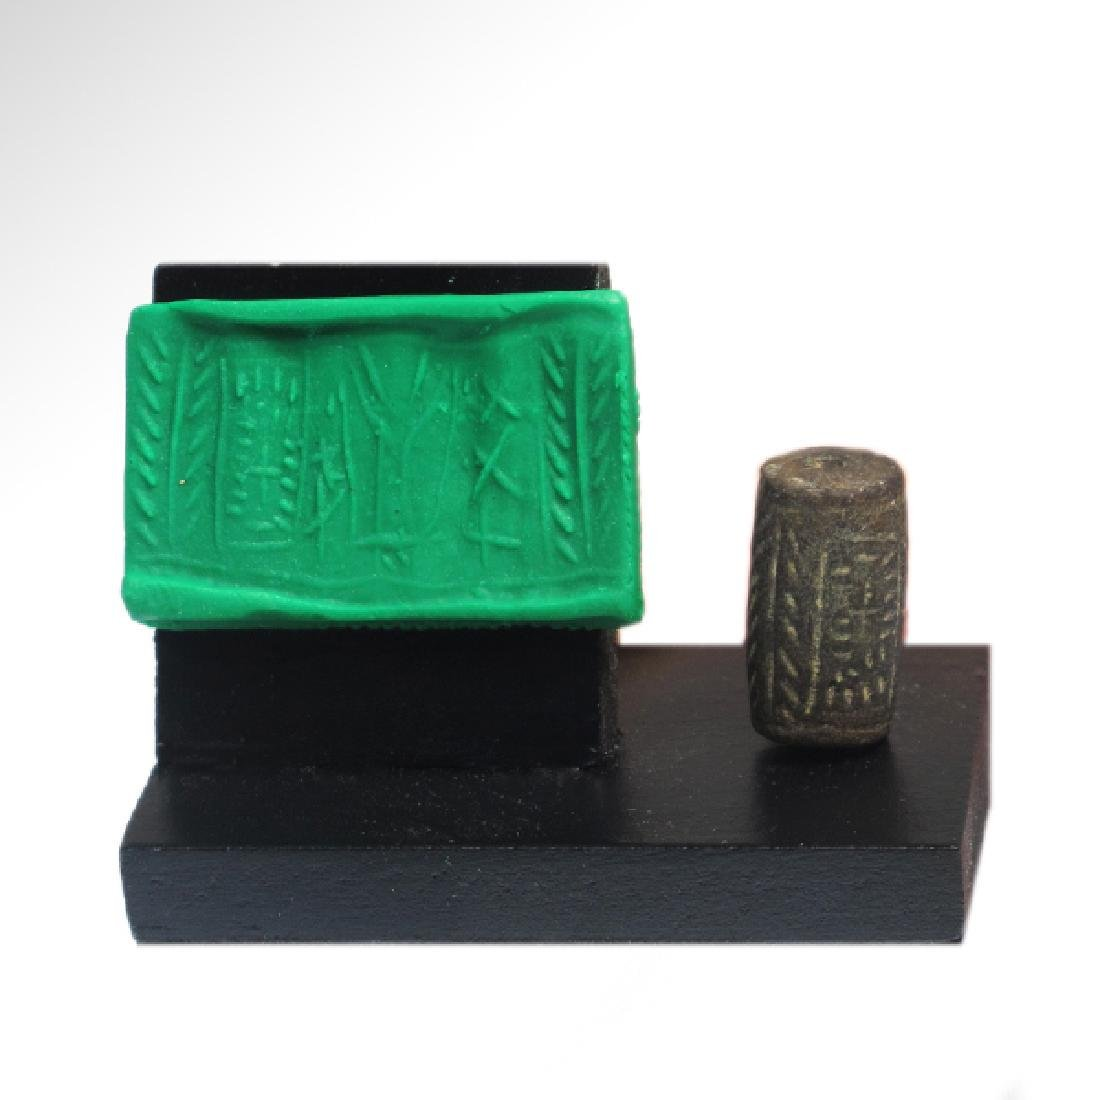 Western Asiatic Cylinder Seal With Trees and Figures